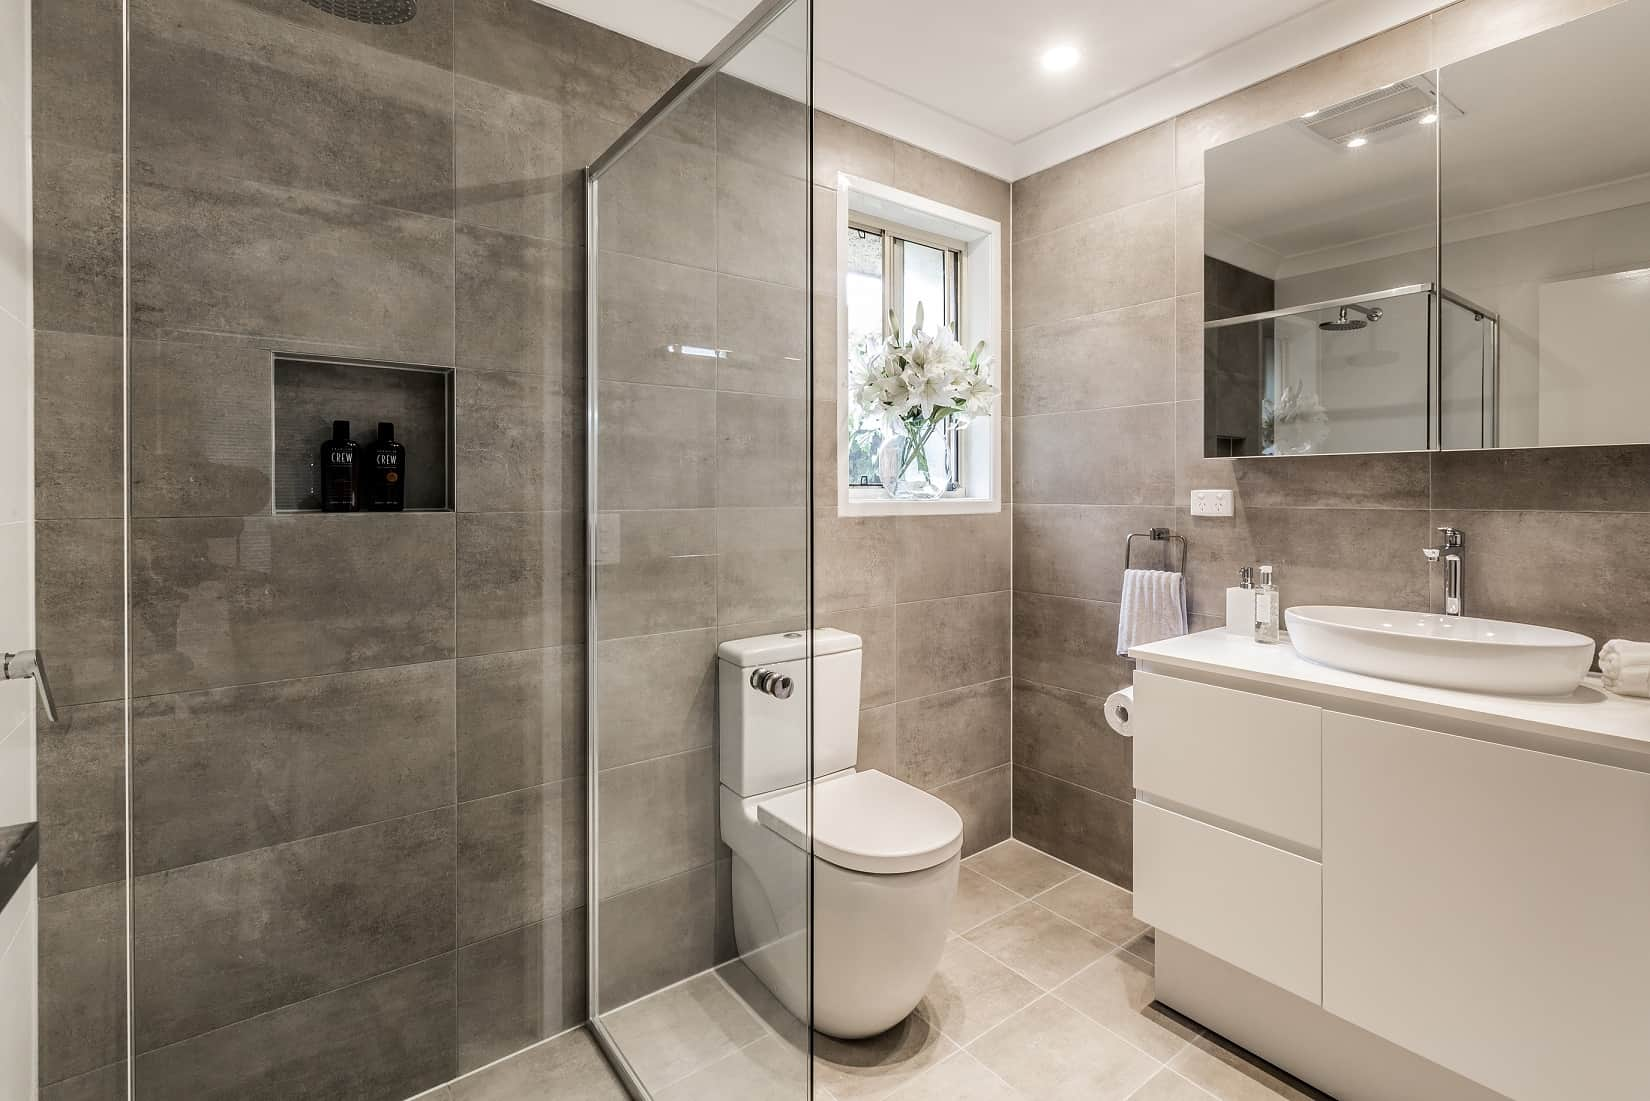 Types of Shower Screens